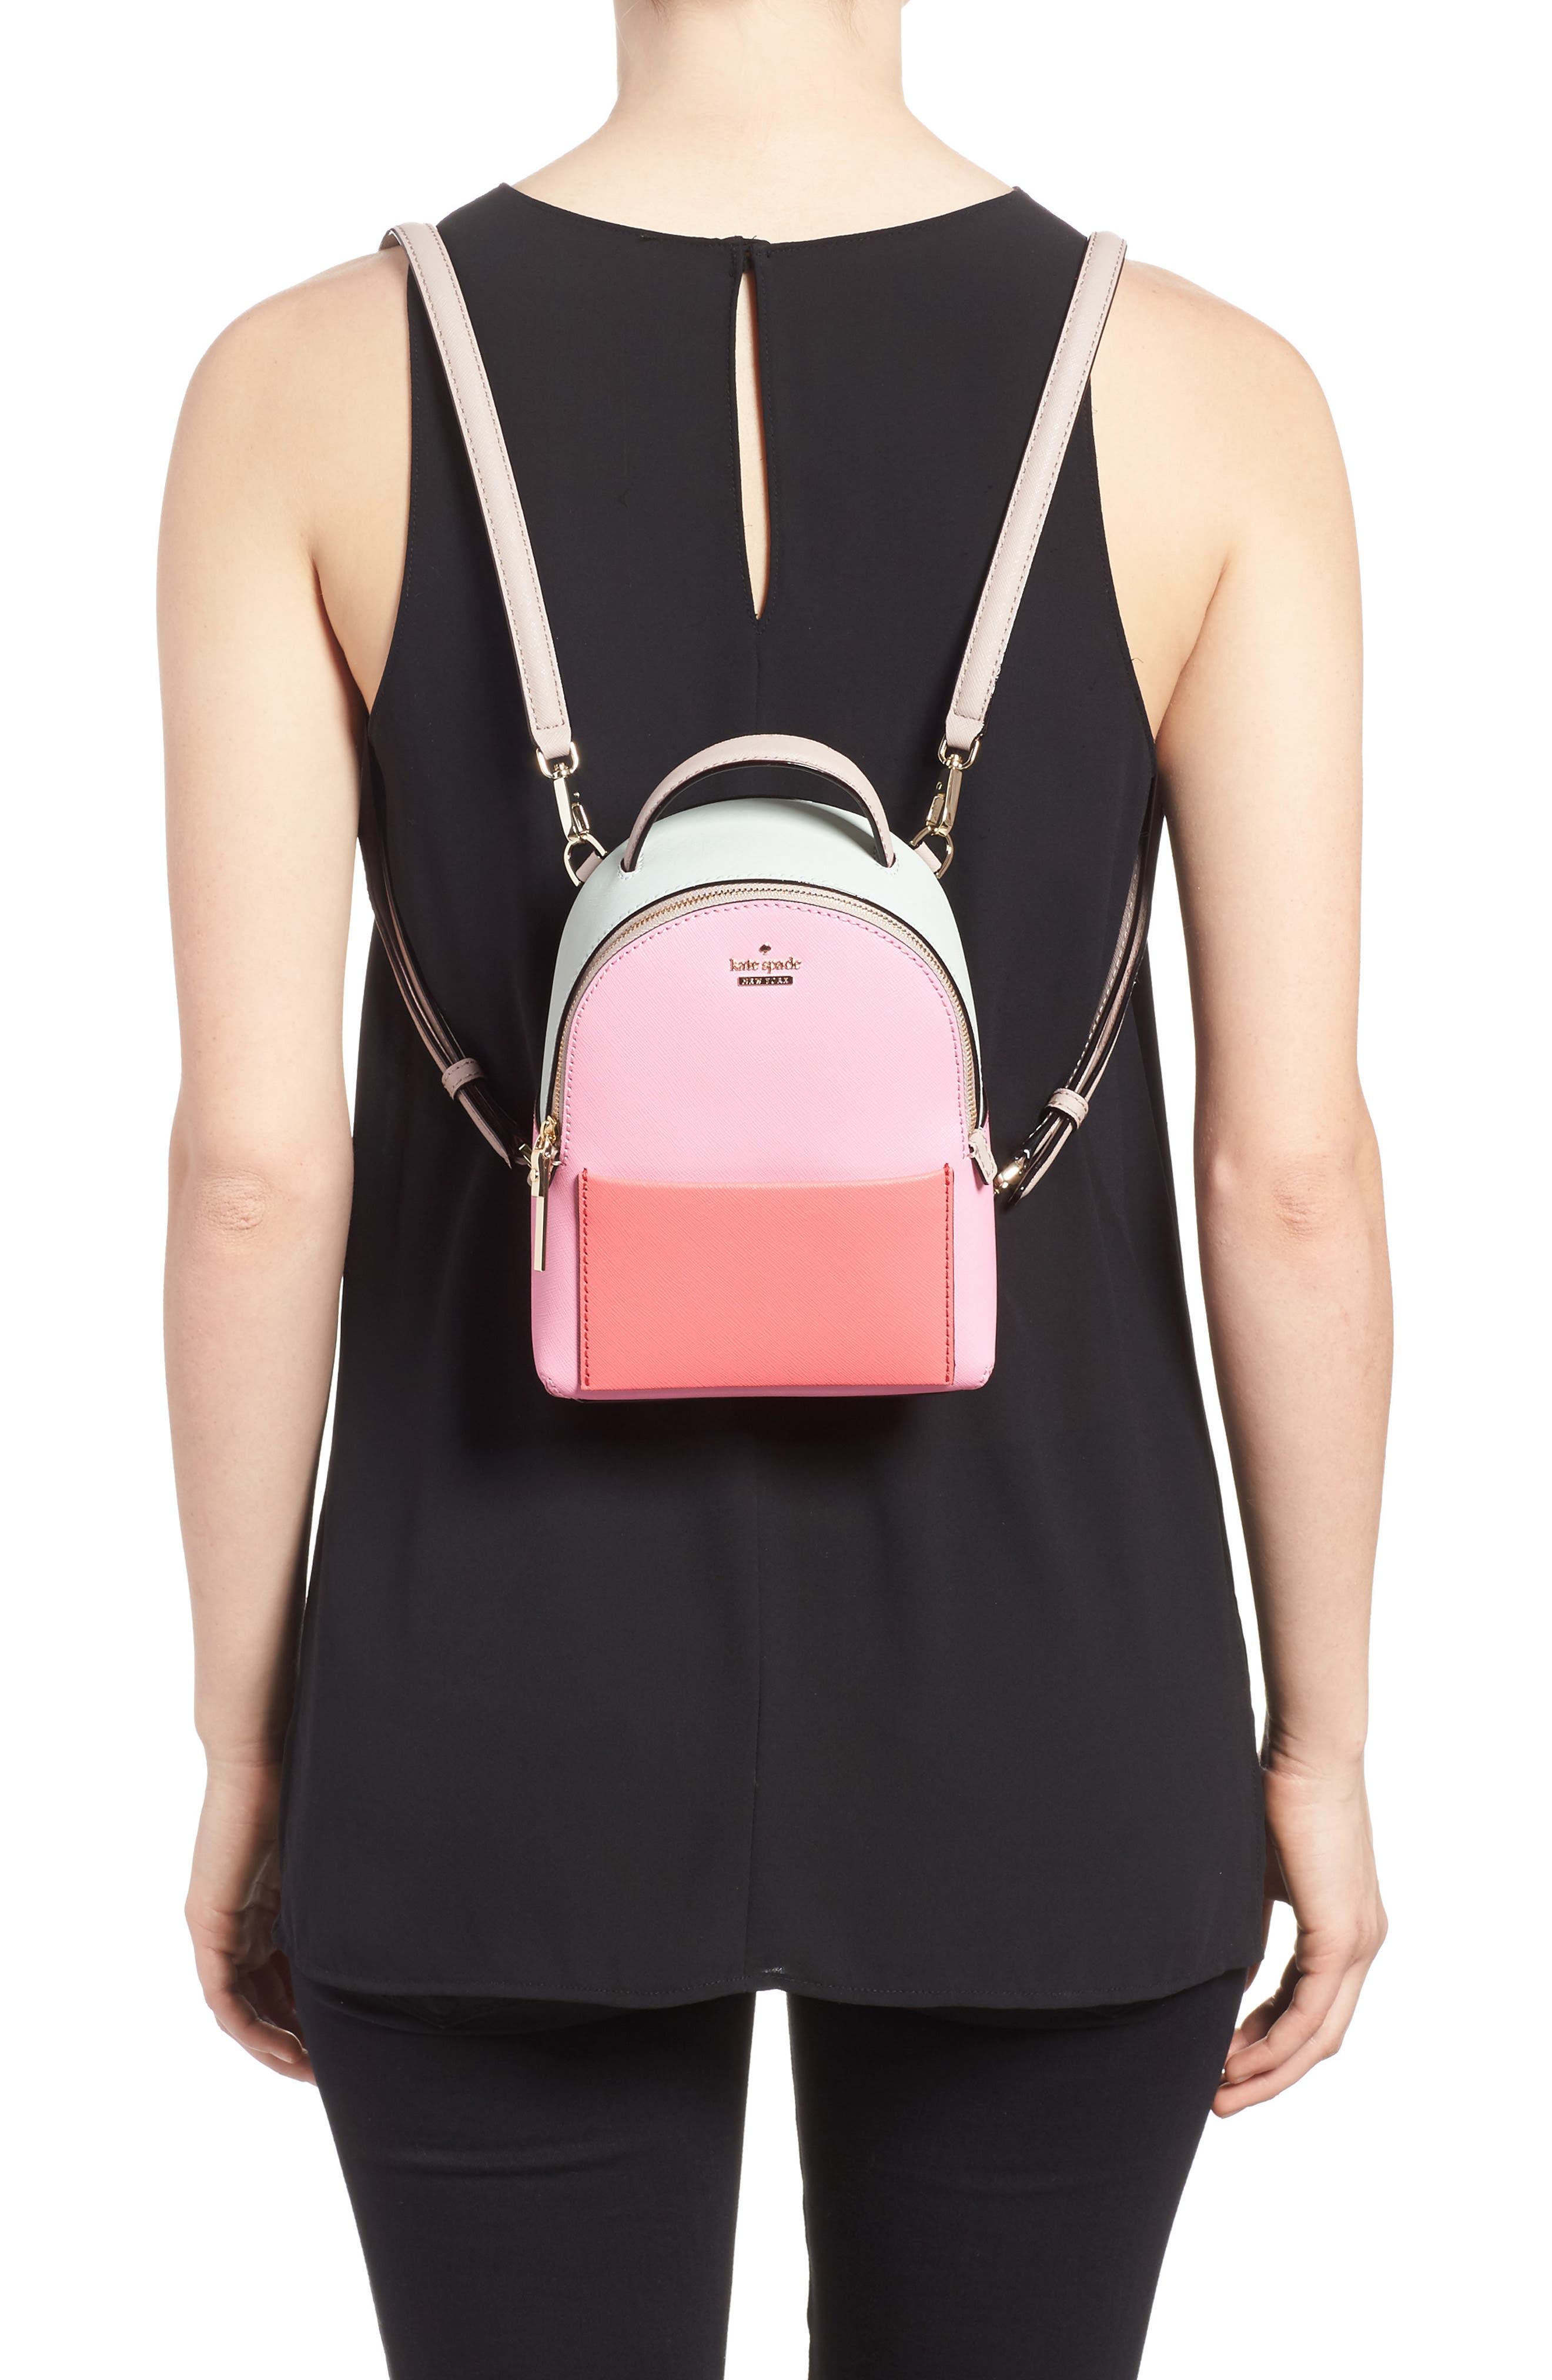 cameron street merry convertible leather backpack,                             Alternate thumbnail 2, color,                             Eraser Pink Multi